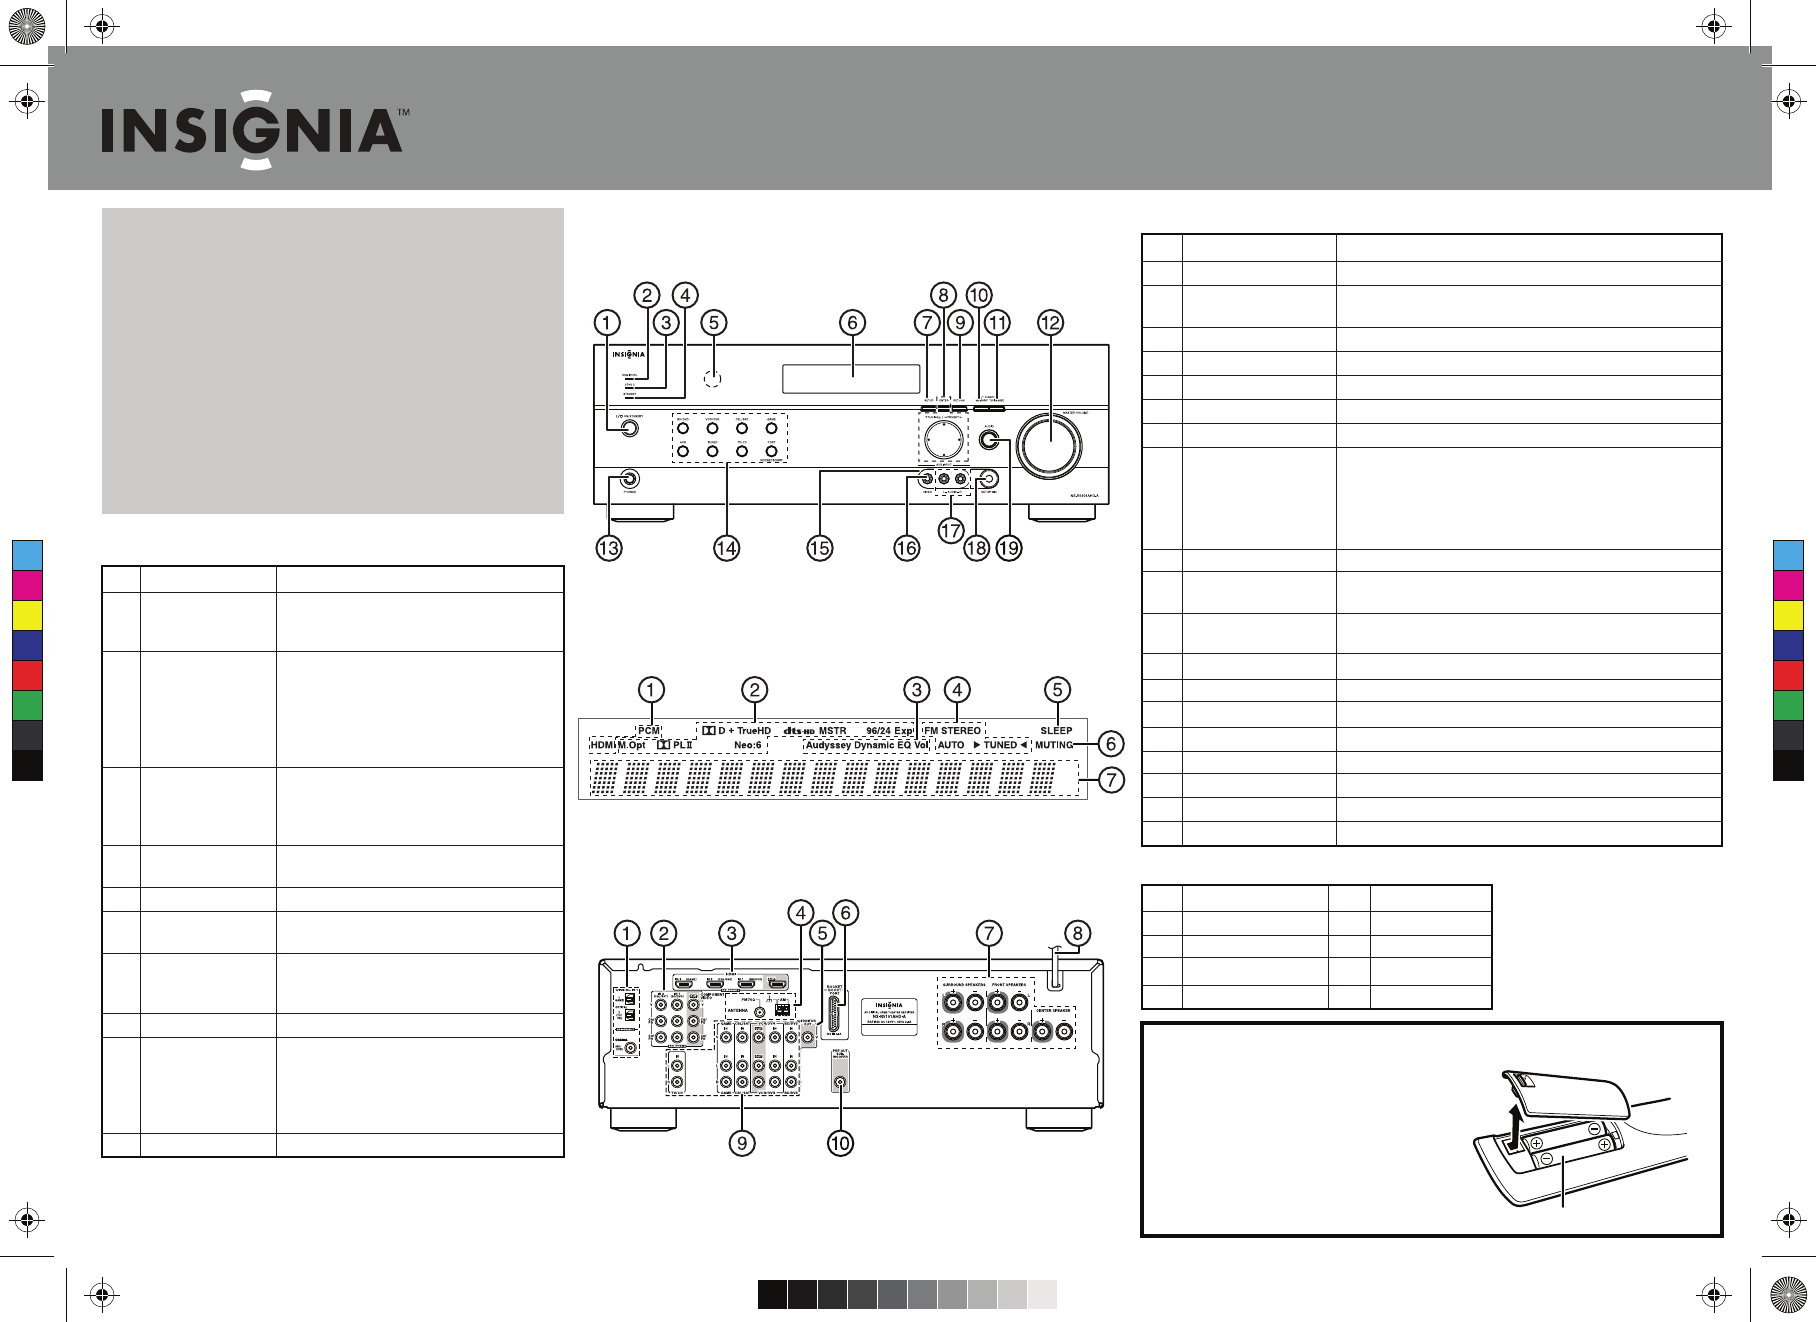 Insignia home theater system ns r5101ahd a user guide insignia ns r5101ahd a home theater system user manual sciox Gallery